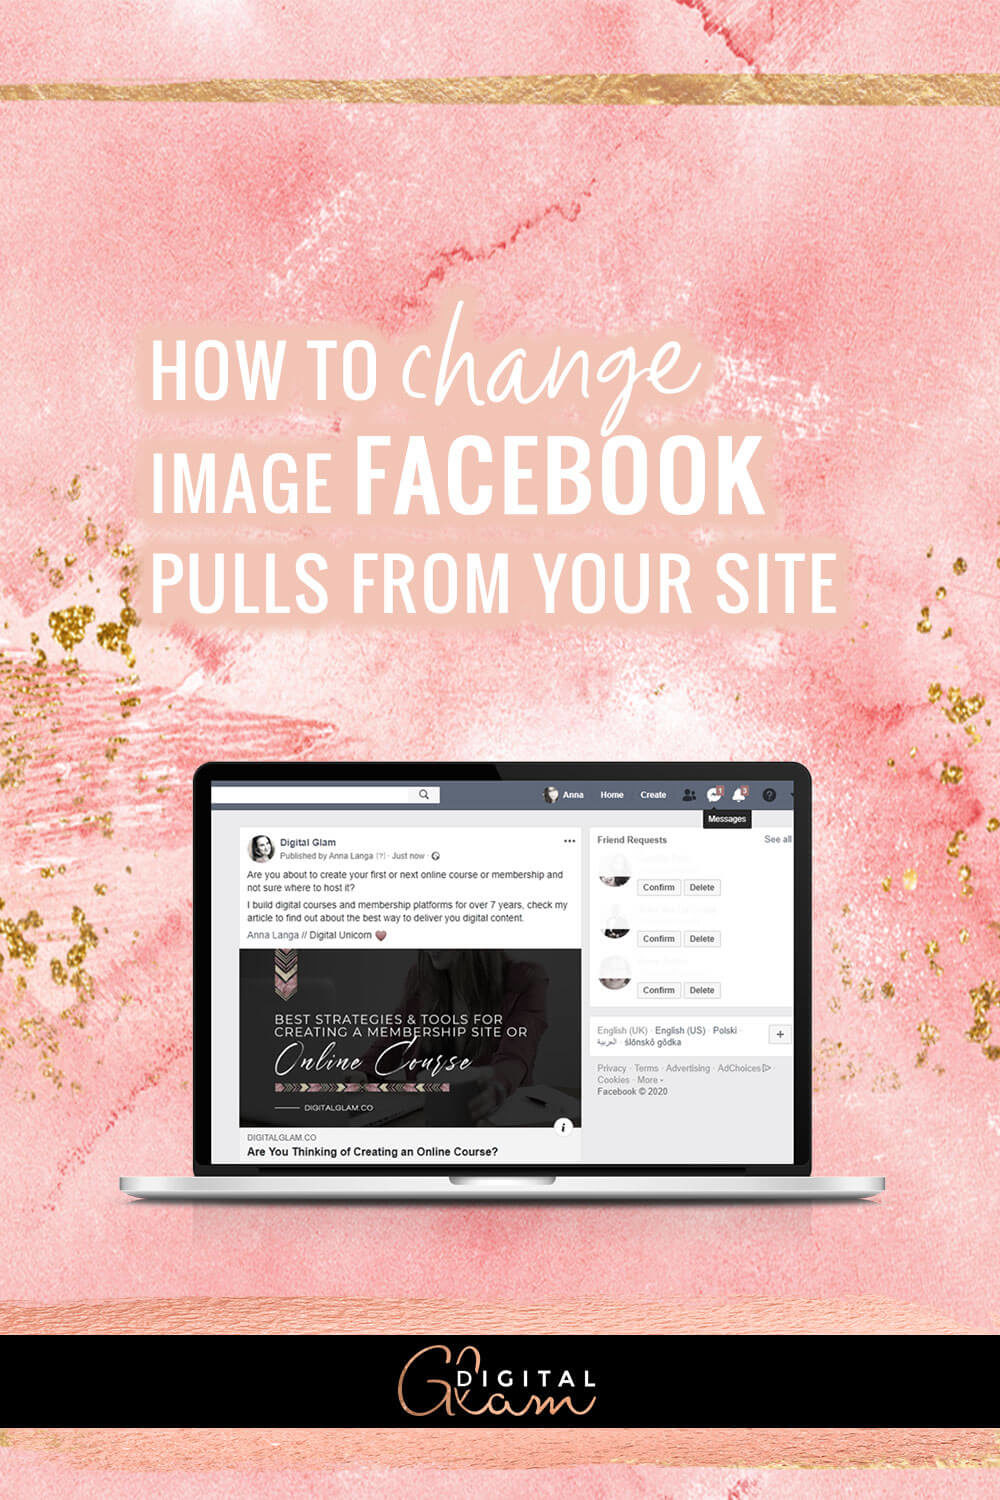 how to change image Facebook pulls from your site